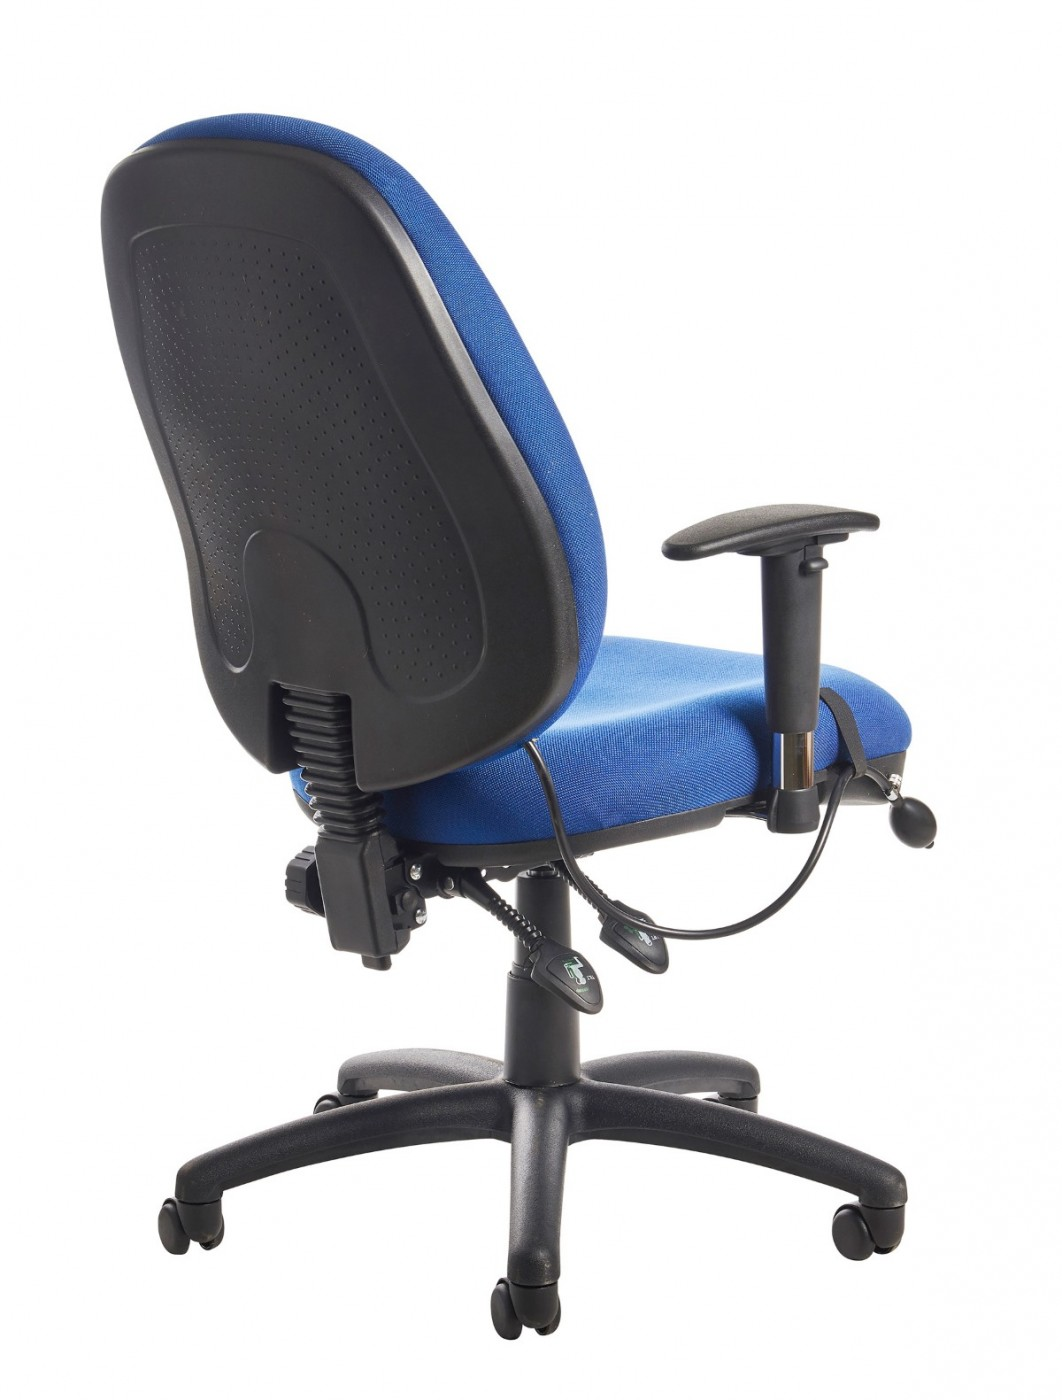 Office Chairs Sofia Fabric Office Chair Sof300t1 By Dams 121 Office Furniture